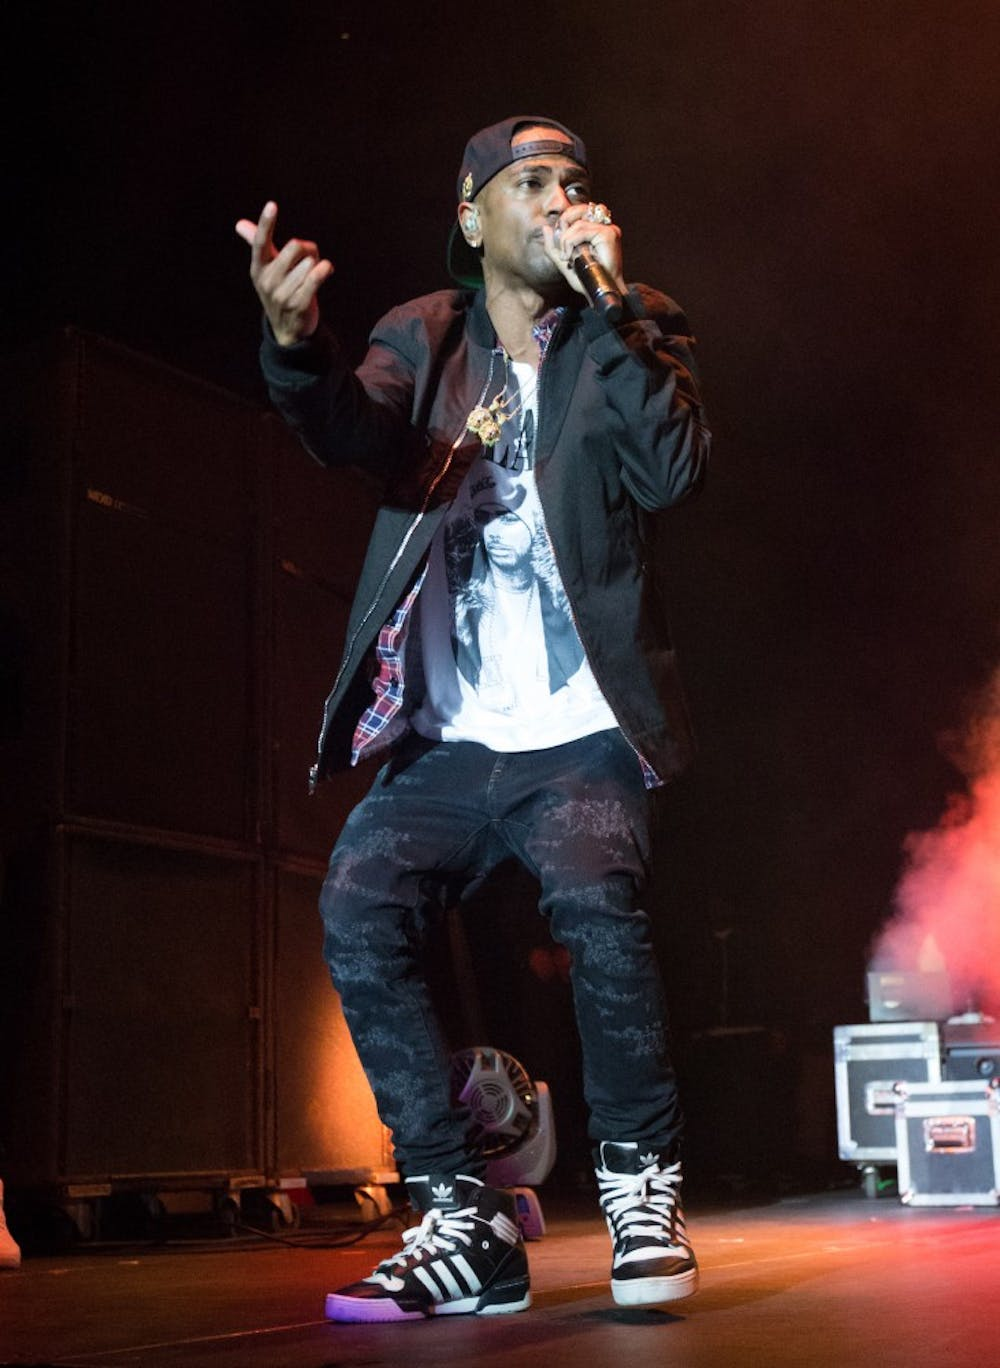 Detroit native Big Sean hits the EMU Convocation Center stage